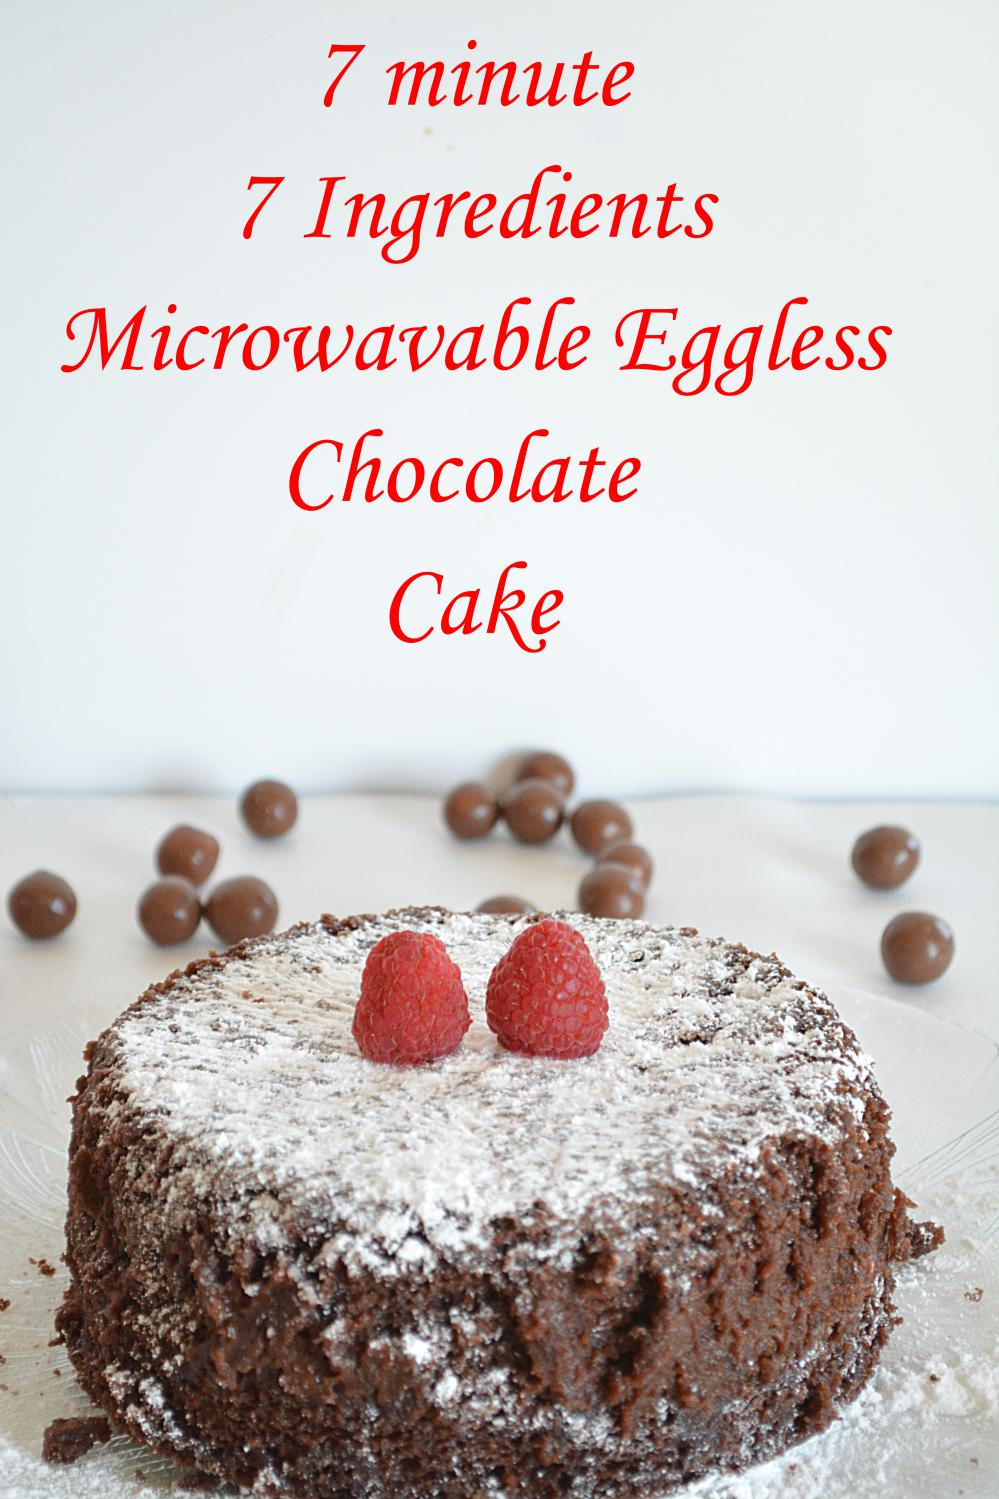 7 Minute Eggless Chocolate Cake Tested Amp Tried Microwave